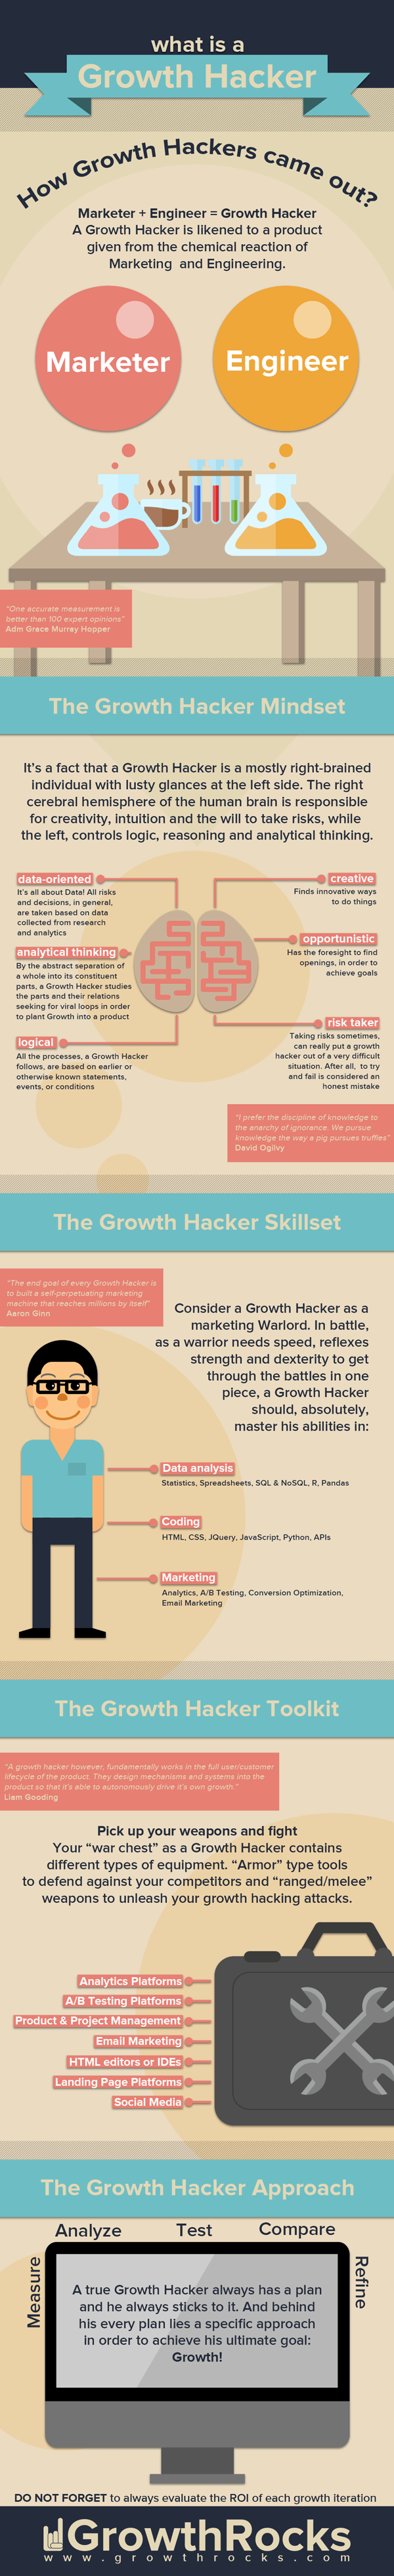 what-is-a-growth-hacker-infographic